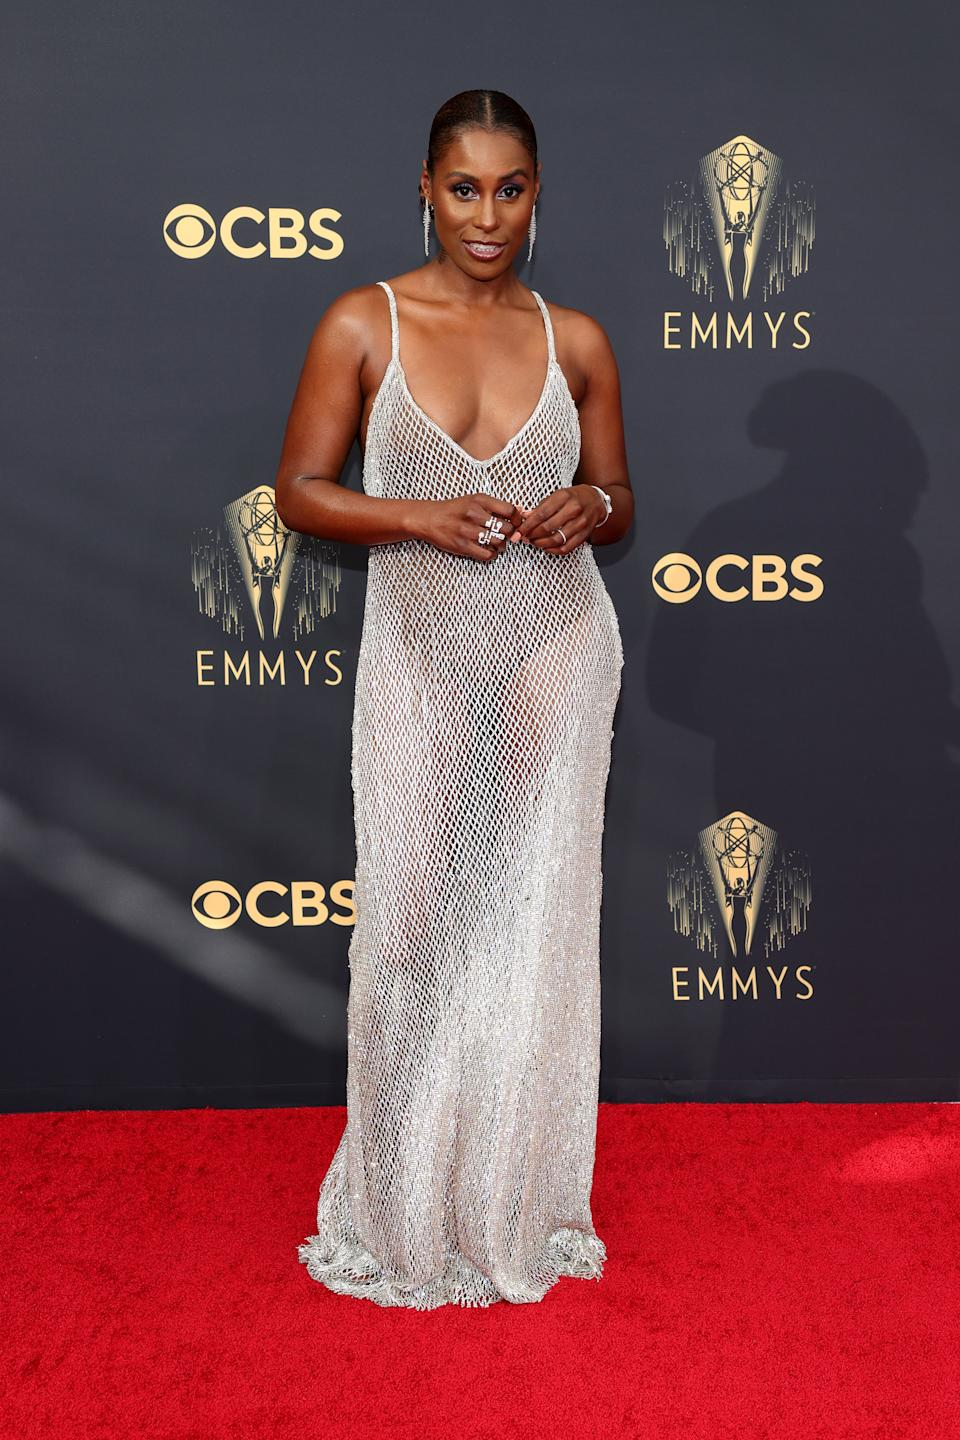 Issa Rae wearing a silver mesh dress at the 73rd Primetime Emmy Awards at L.A. LIVE on September 19, 2021 in Los Angeles, California. (Photo by Rich Fury/Getty Images)